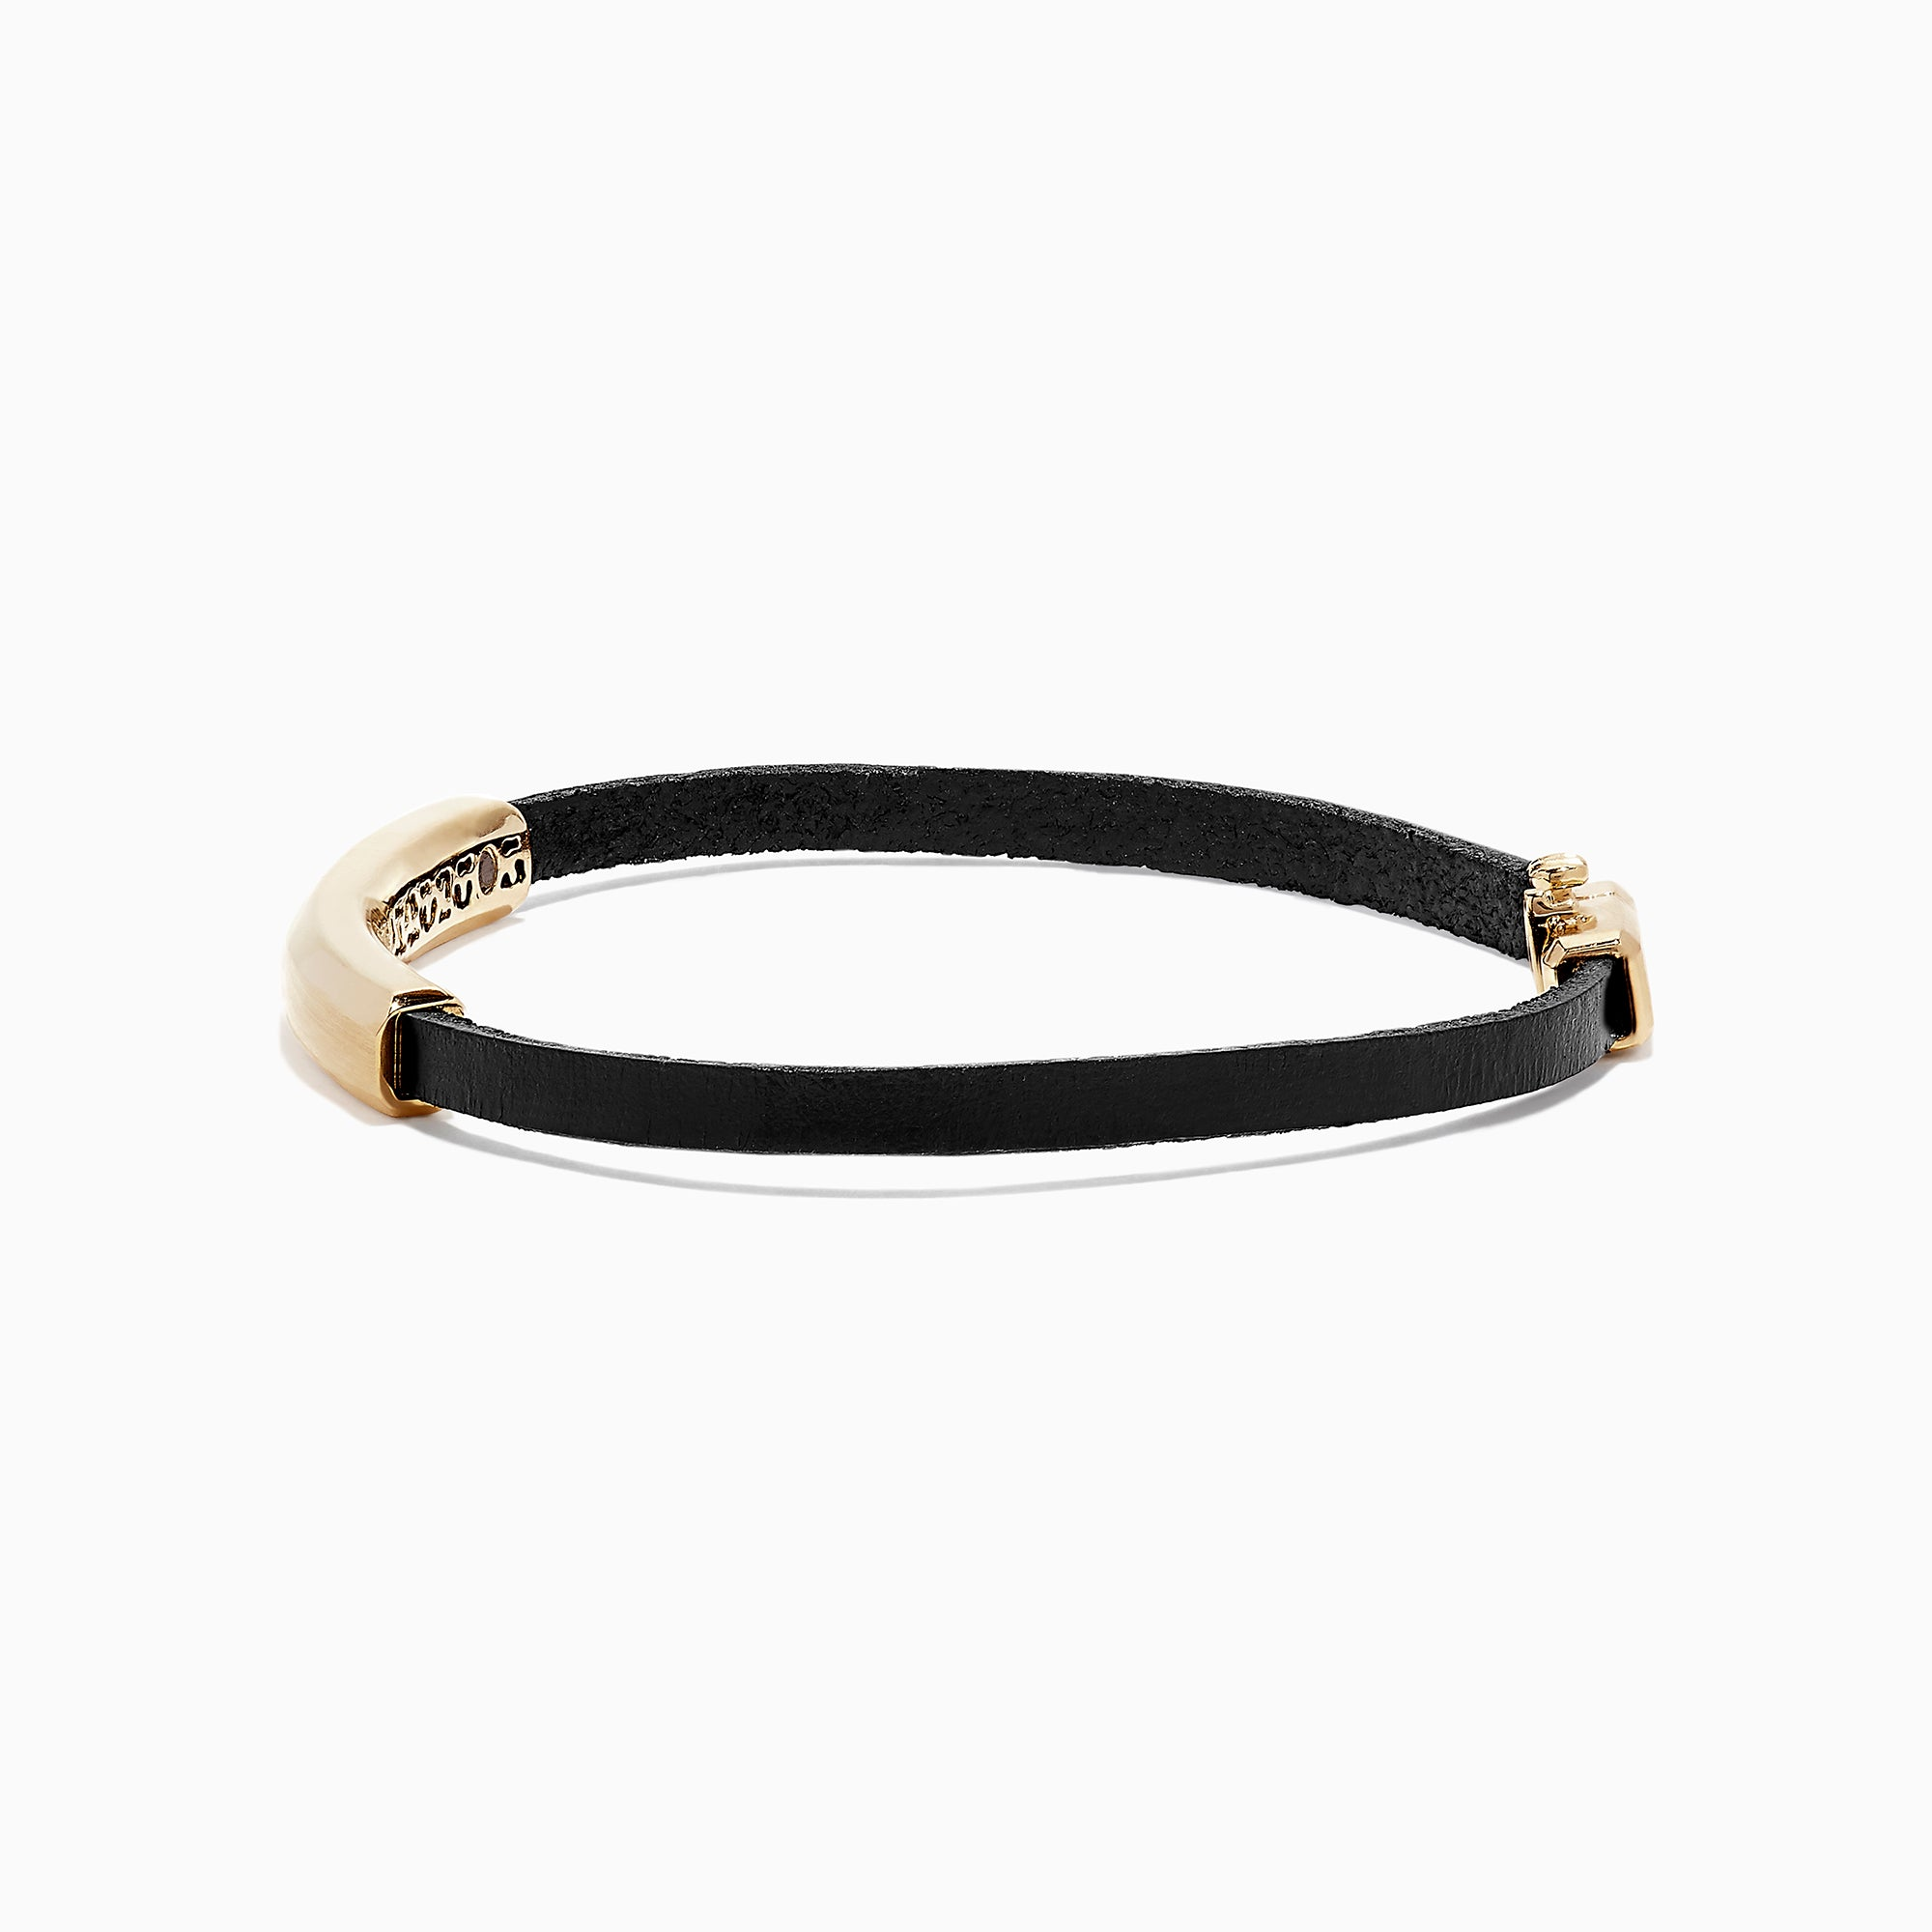 Effy Men's 14K Yellow Gold and Leather Bracelet